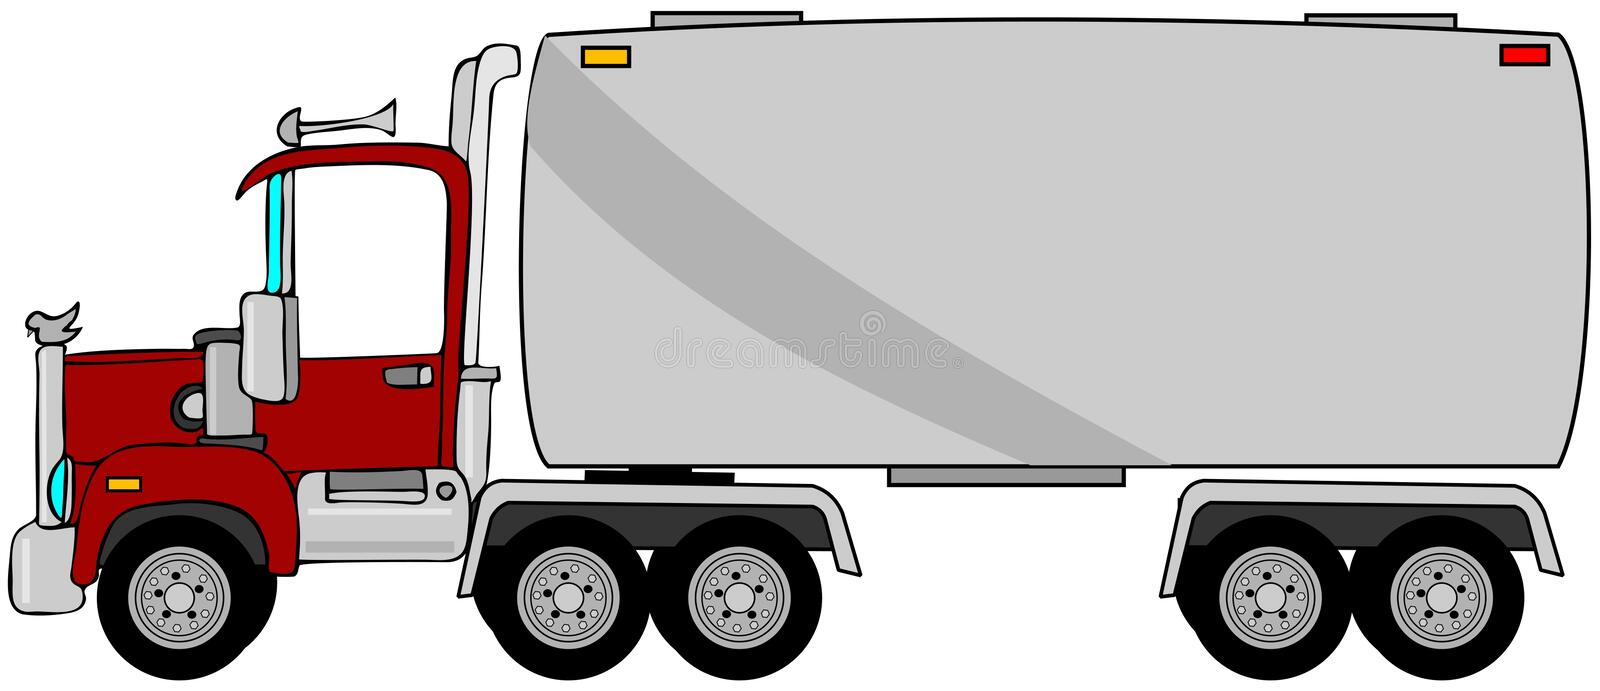 Camion-citerne aspirateur illustration stock